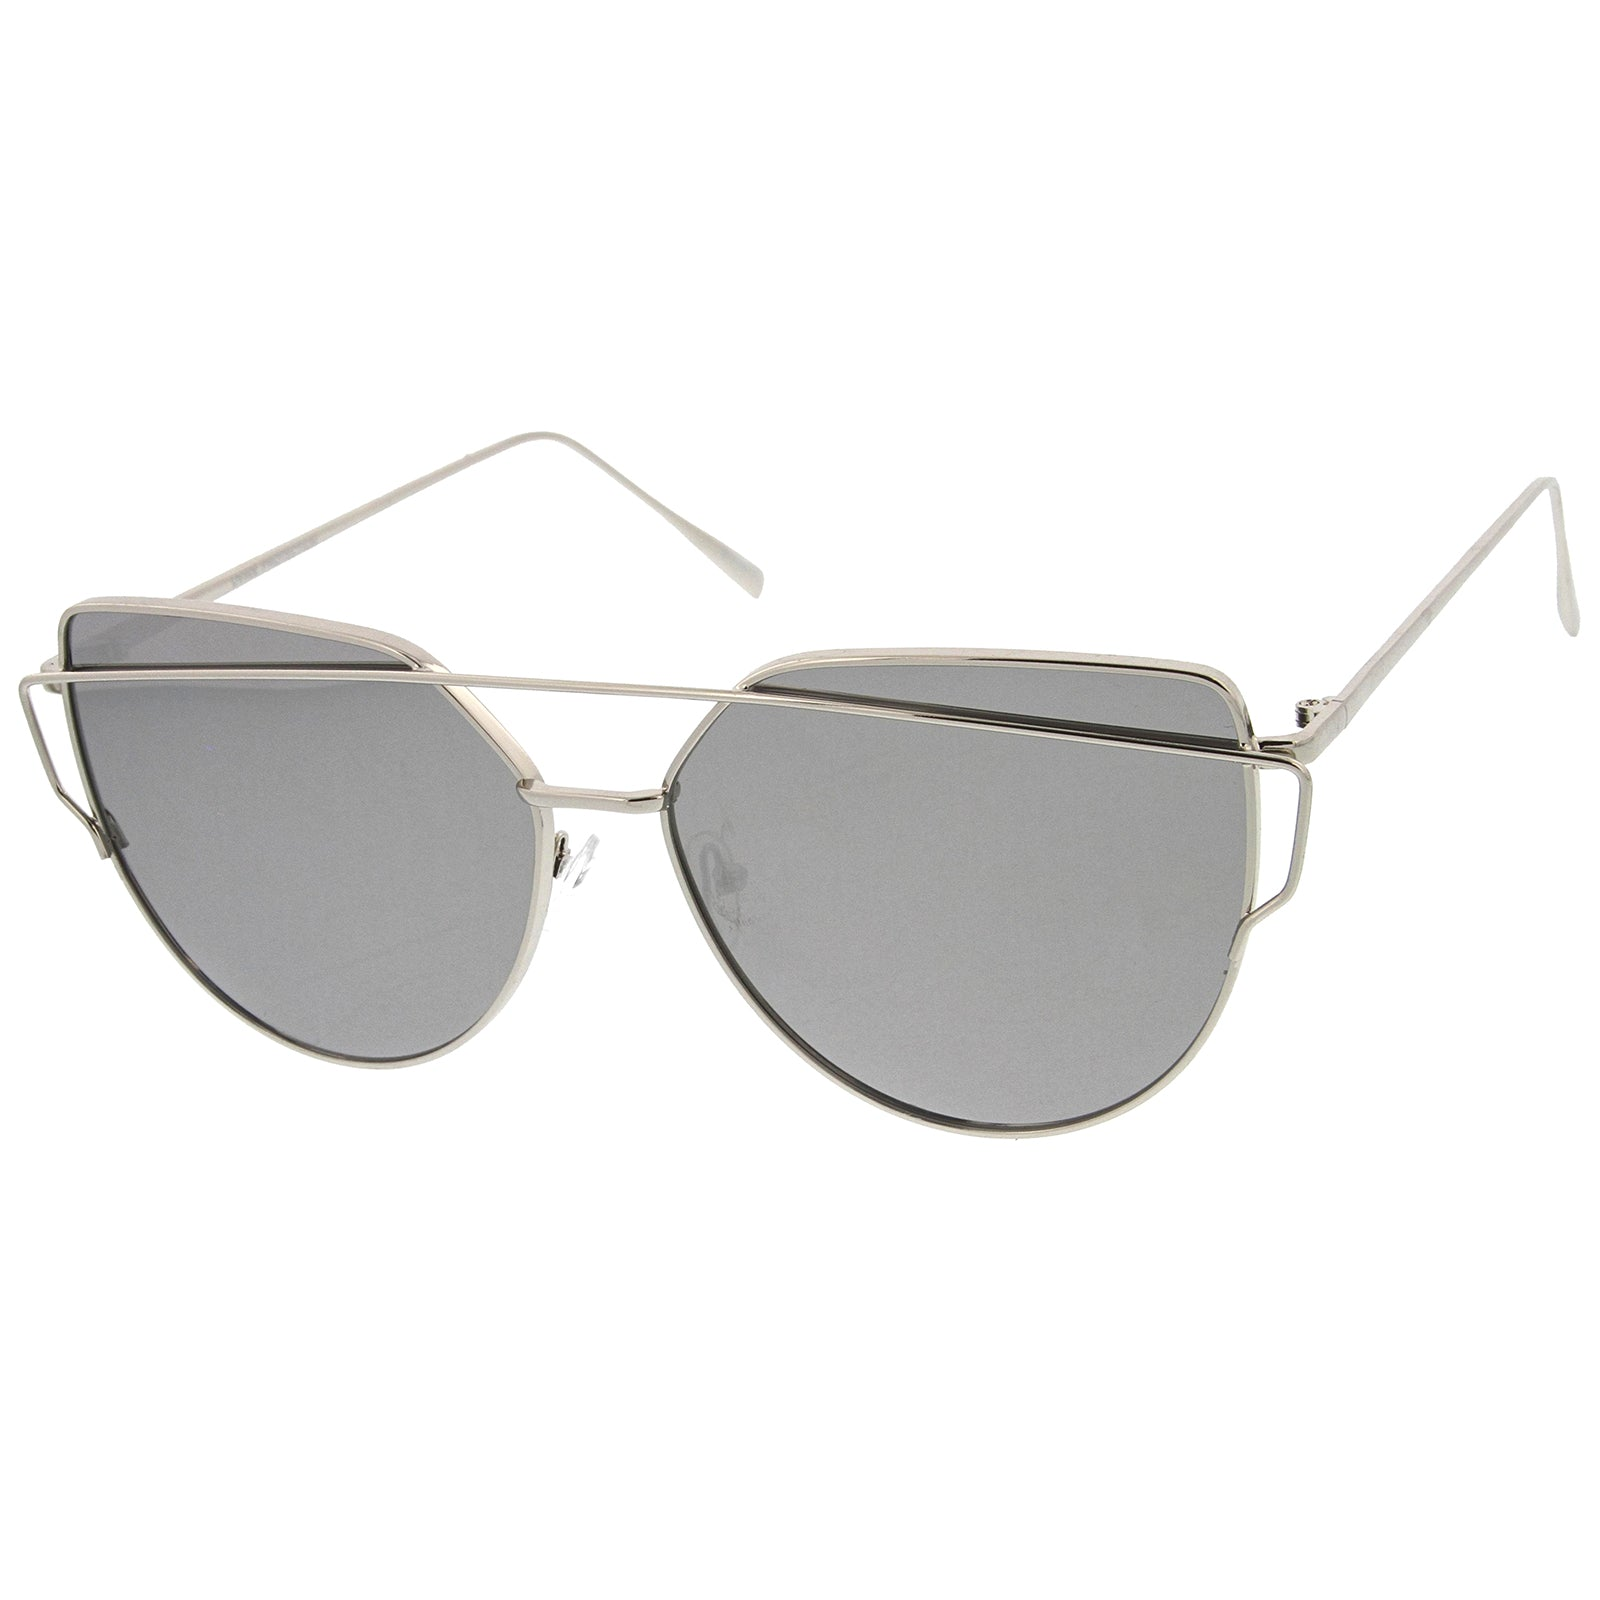 Oversize Metal Frame Thin Temple Color Mirror Flat Lens Aviator Sunglasses 62mm - sunglass.la - 2